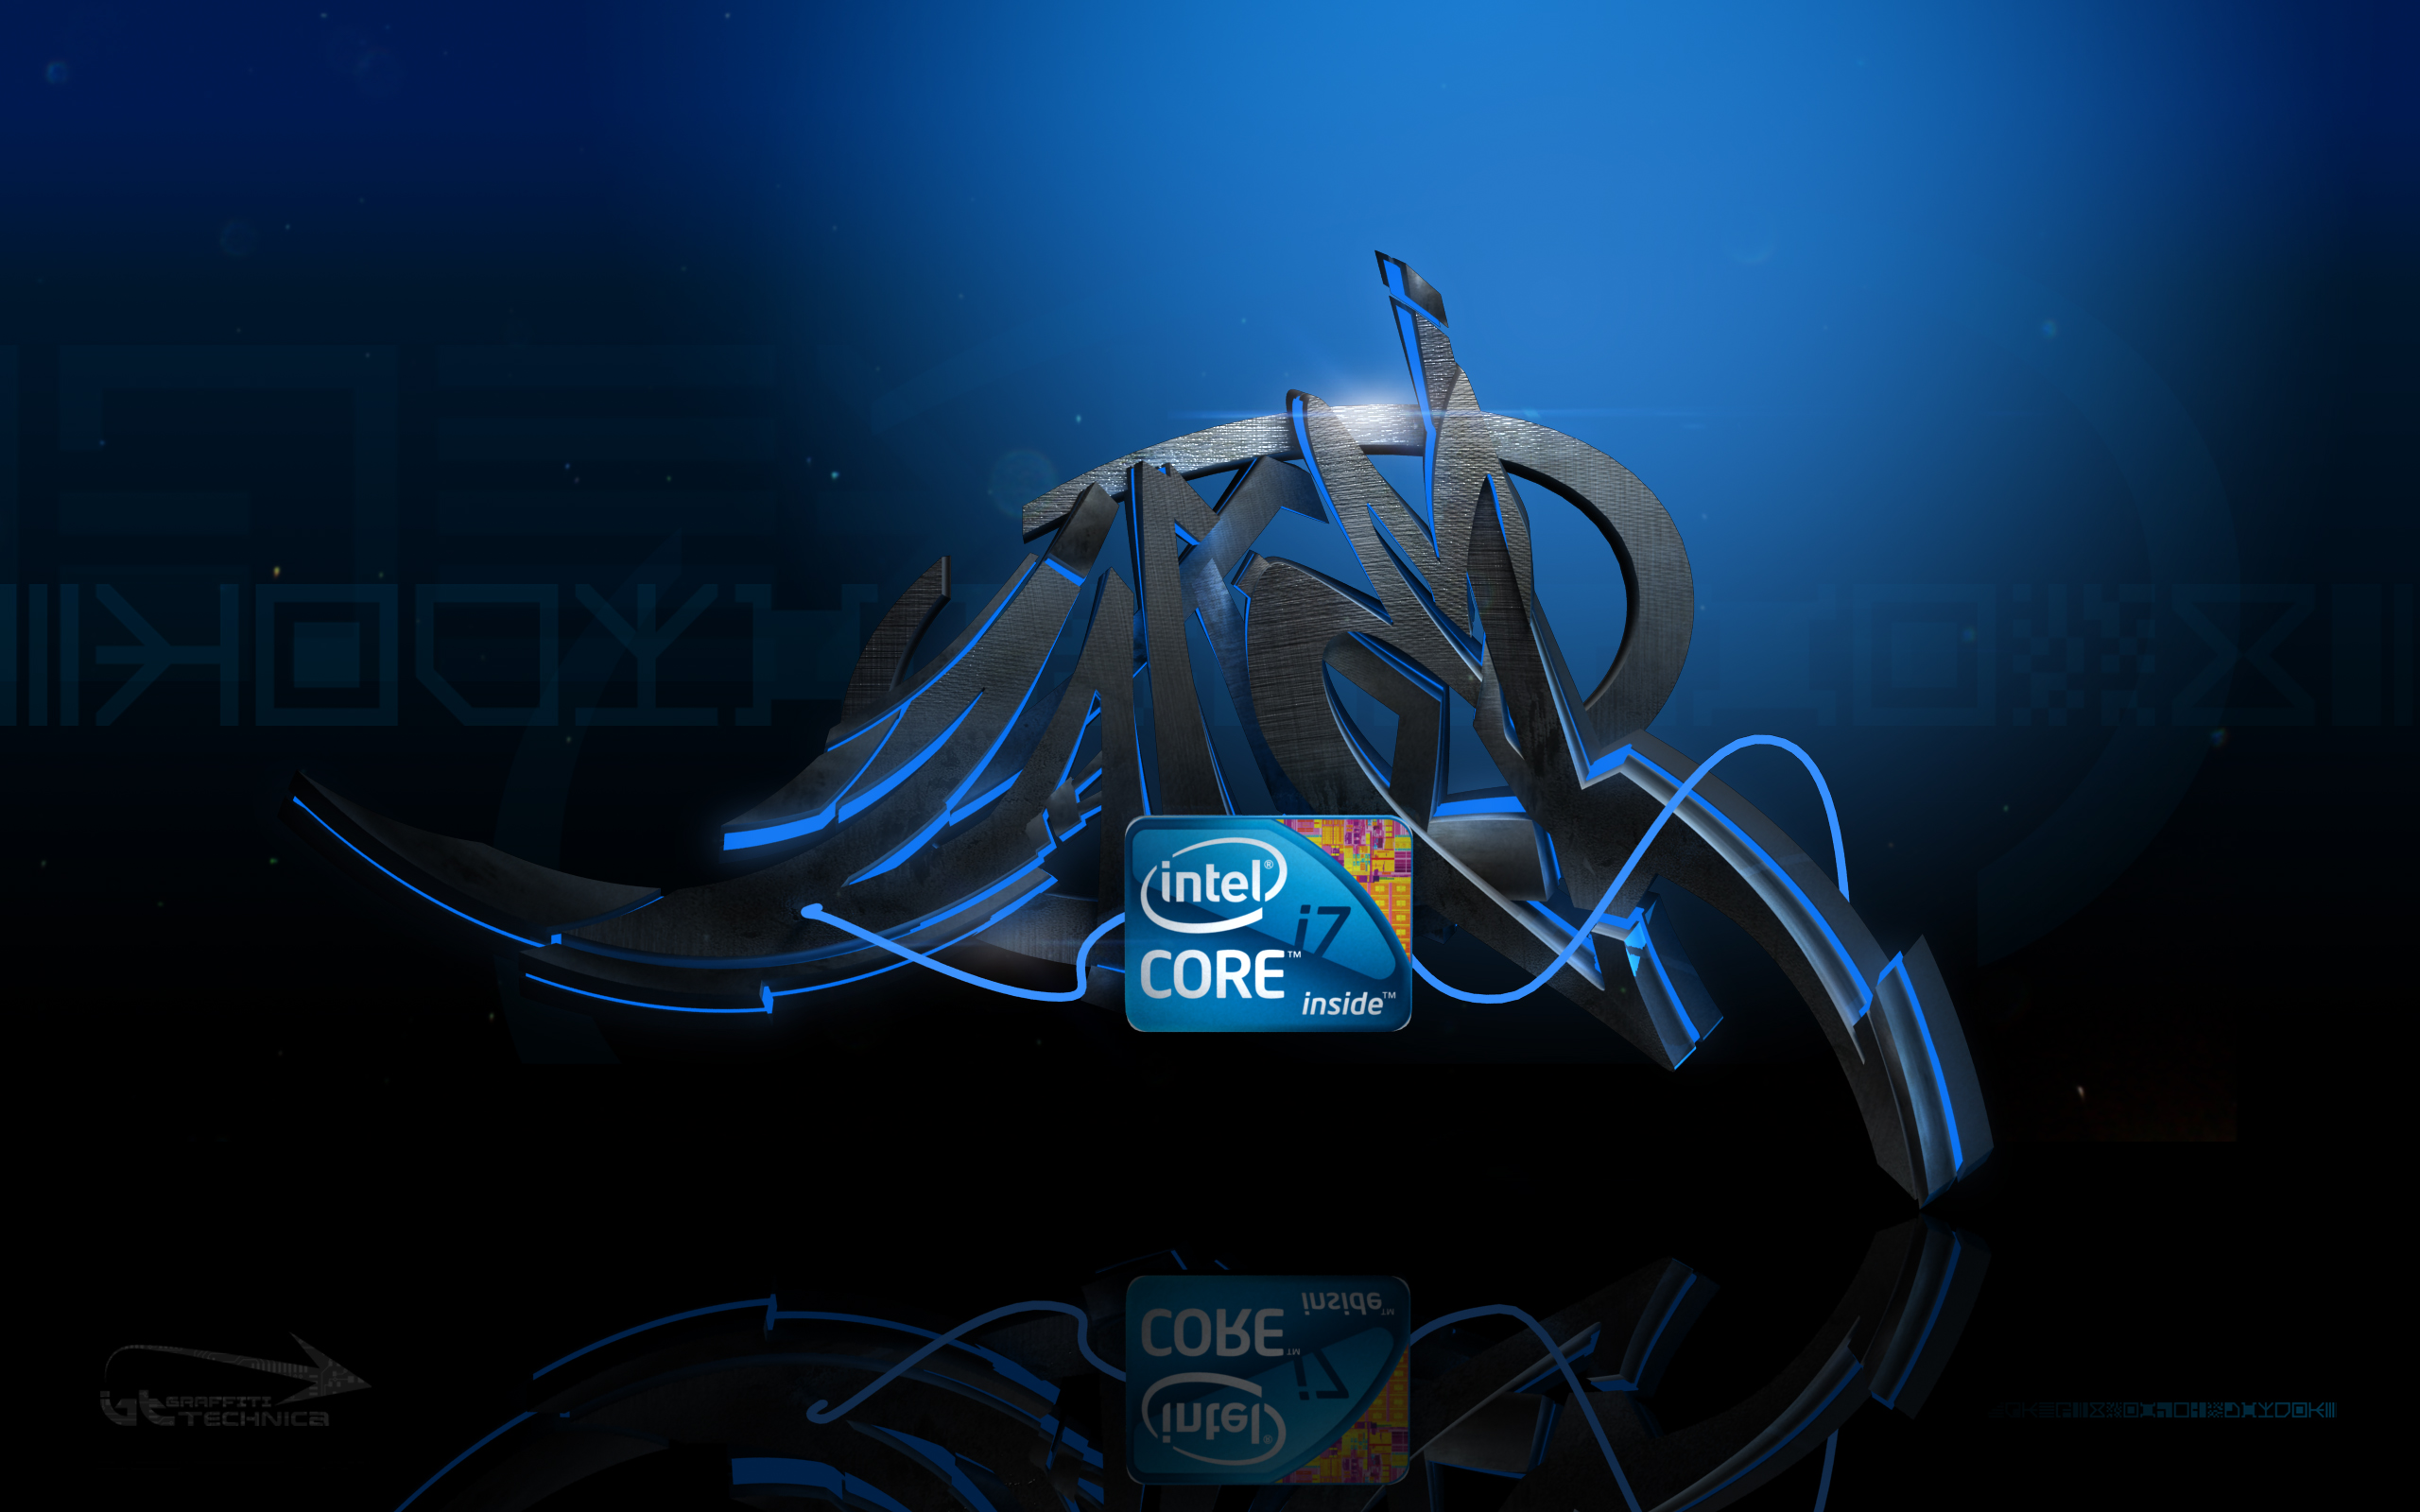 Live Intel Wallpaper